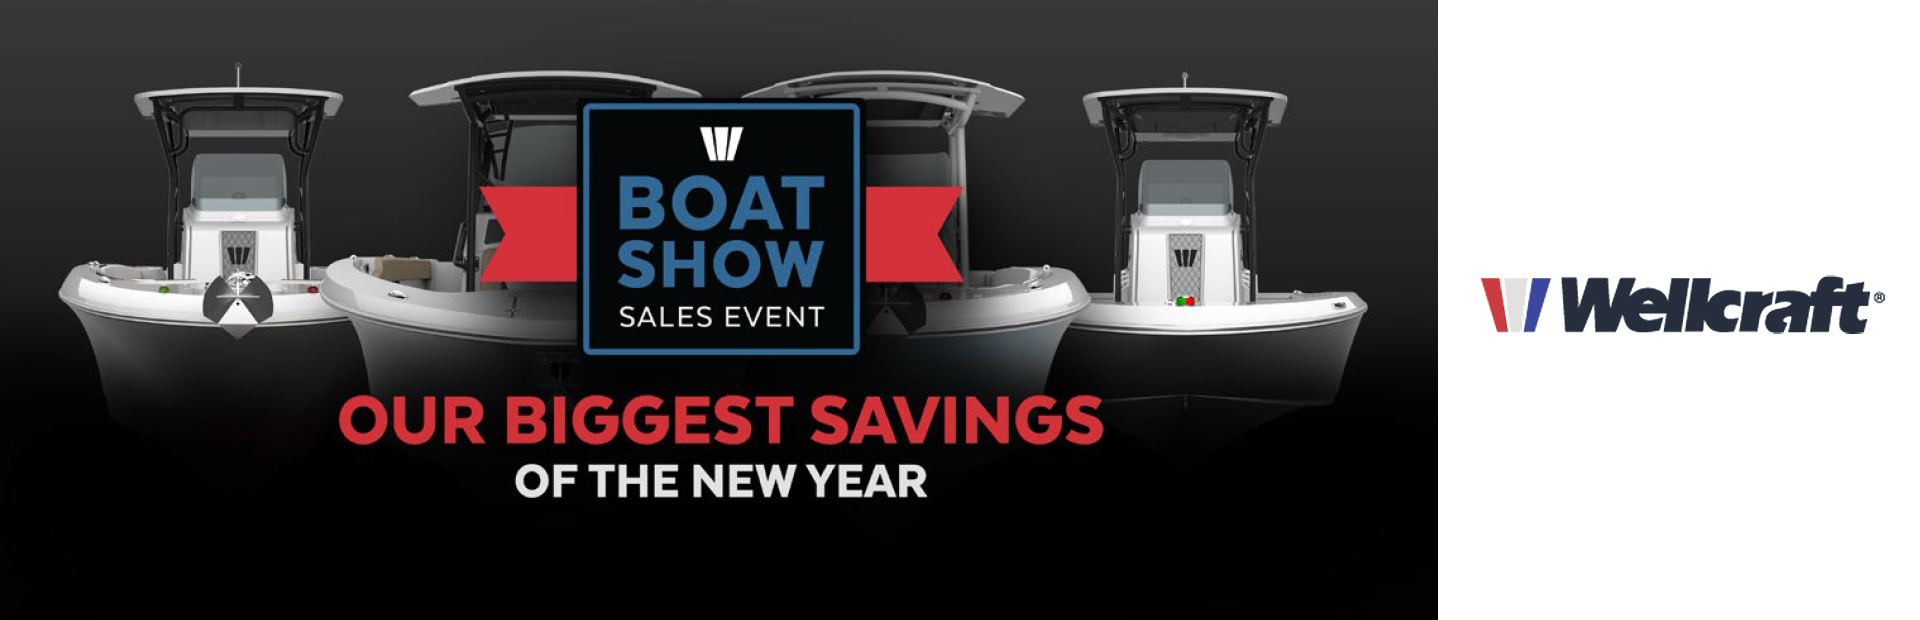 Wellcraft: Boat Show Sales Event